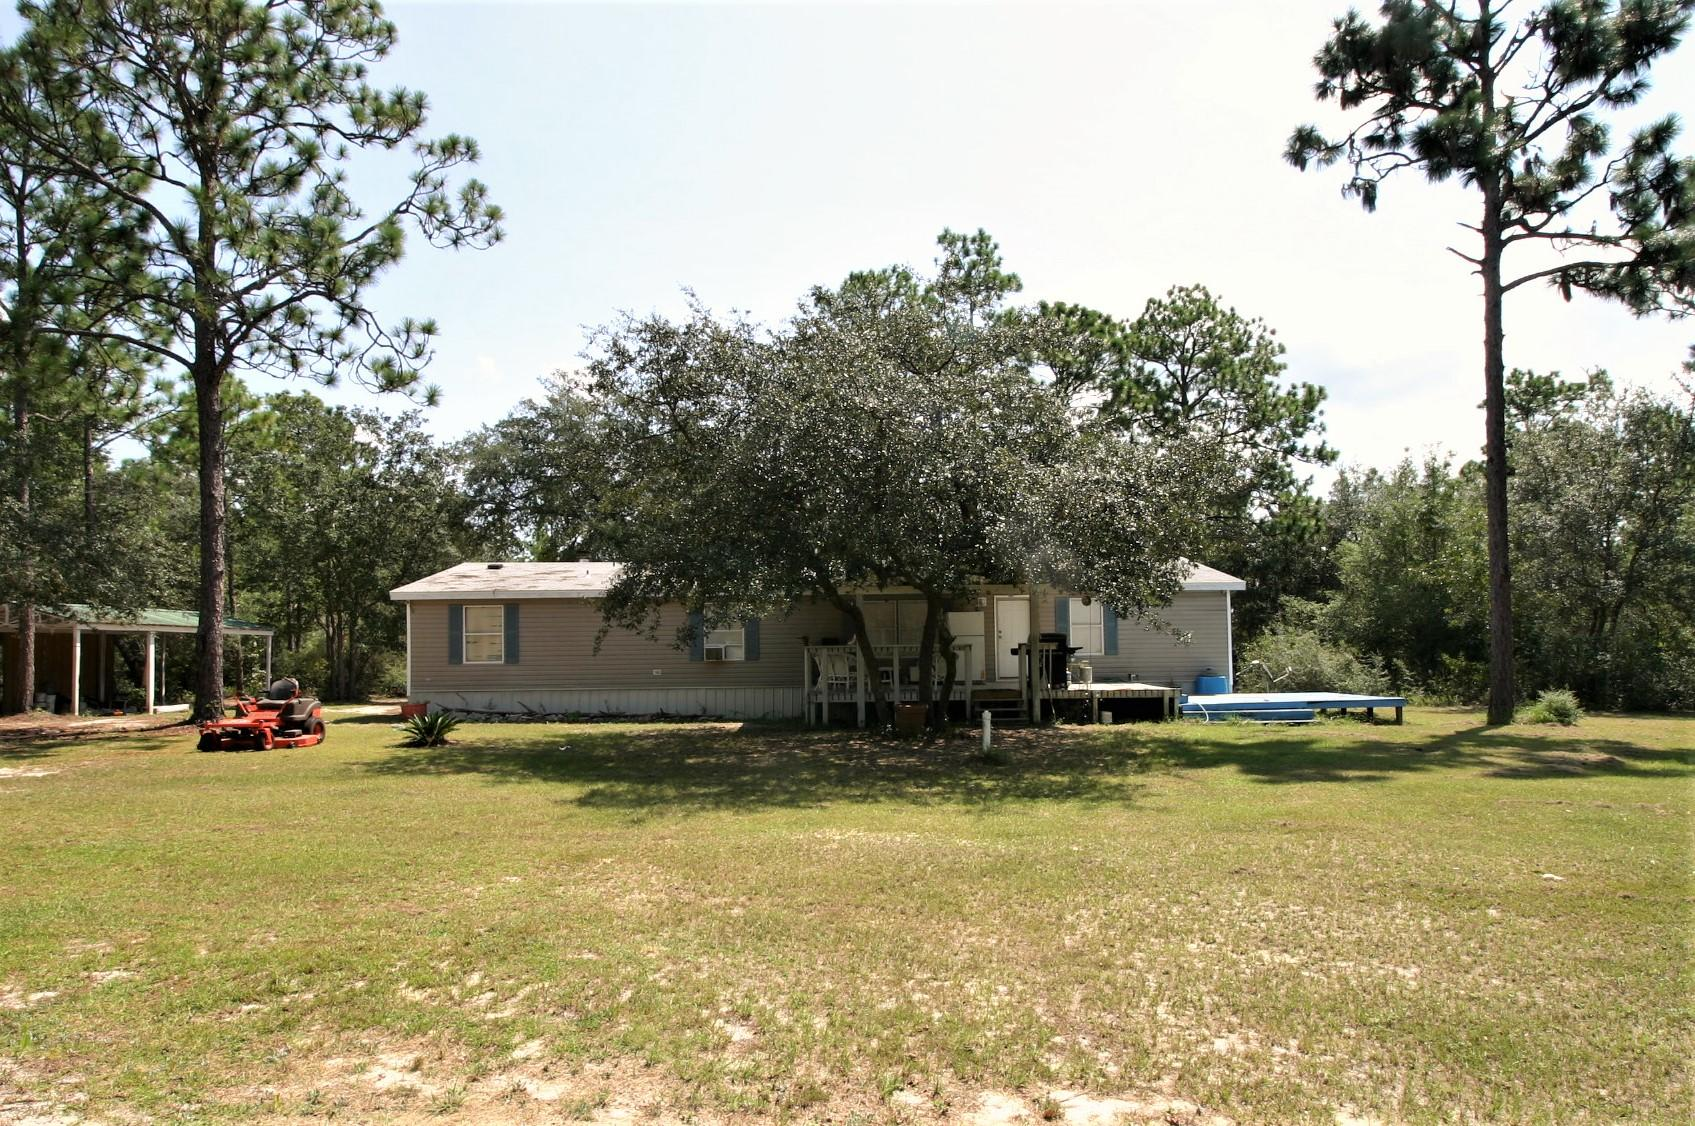 Photo of home for sale at 4236 Whippoorwill, Holt FL